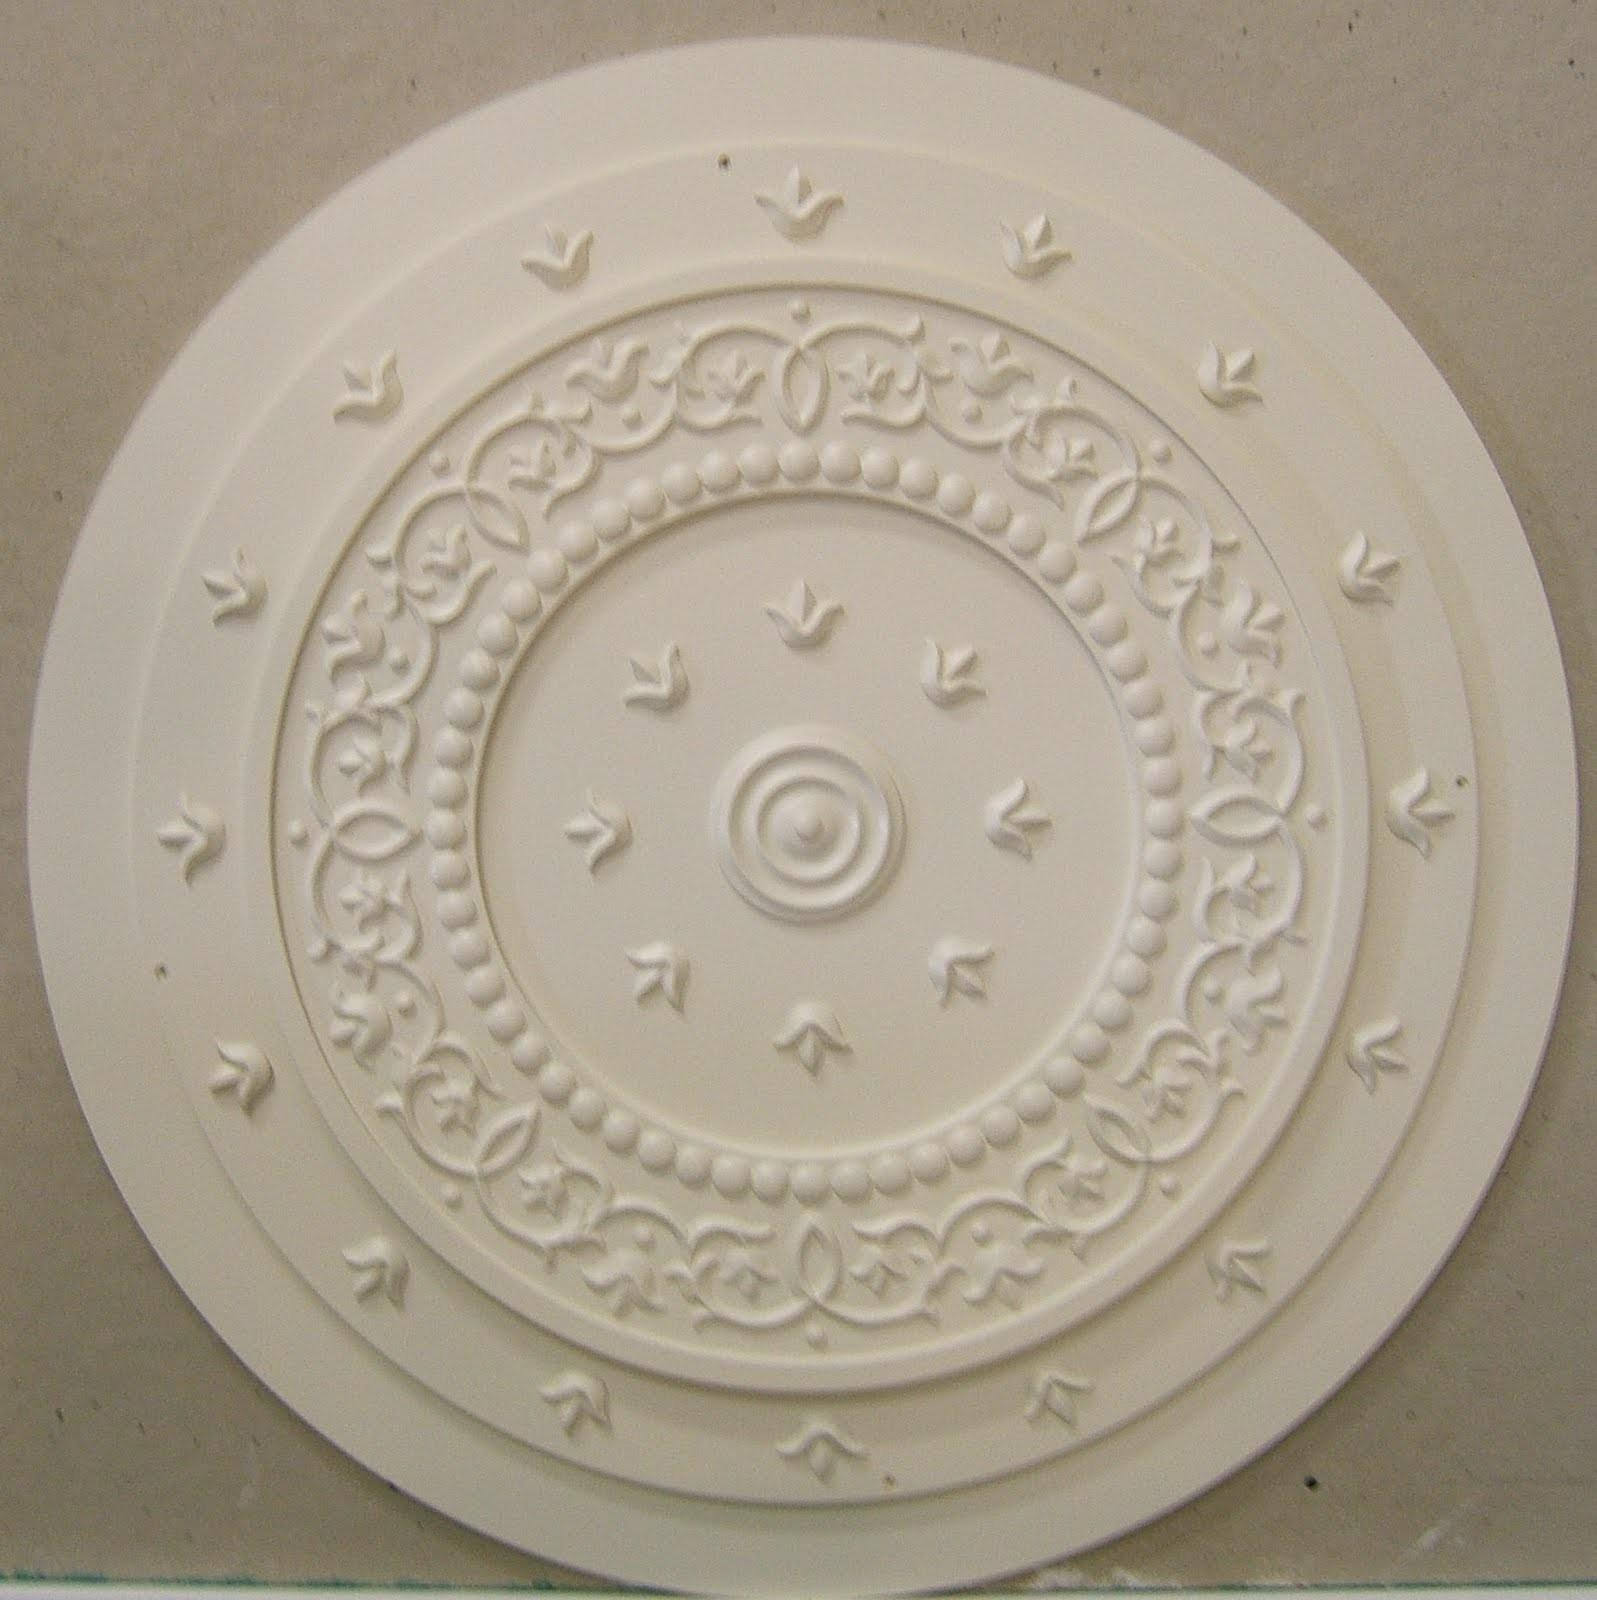 Marie Ricci Collection Ceiling Medallion John